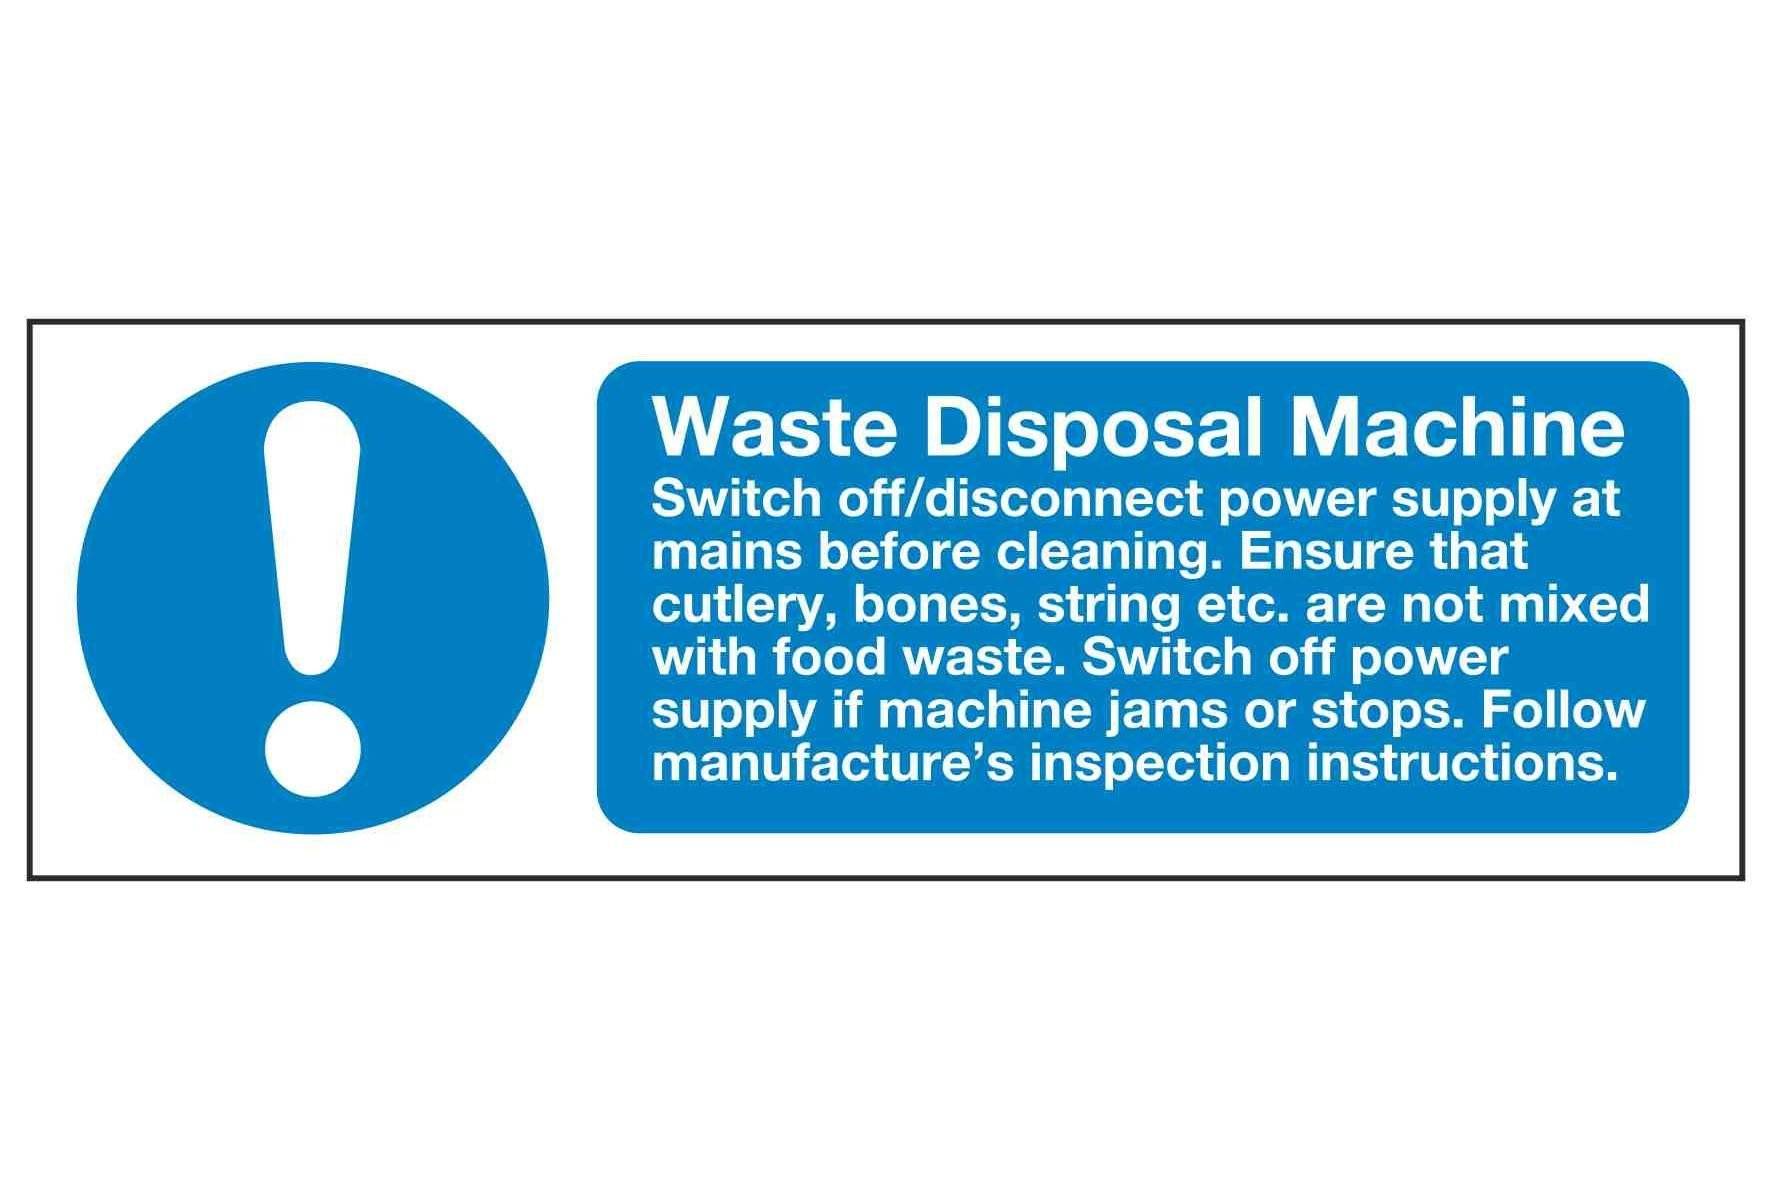 Waste Disposal Machine Switch off disconnect power supply at mains before cleaning. Ensure that cutlery, bones, string etc. are not mixed with food waste. Switch off power supply if machine jams or stops.